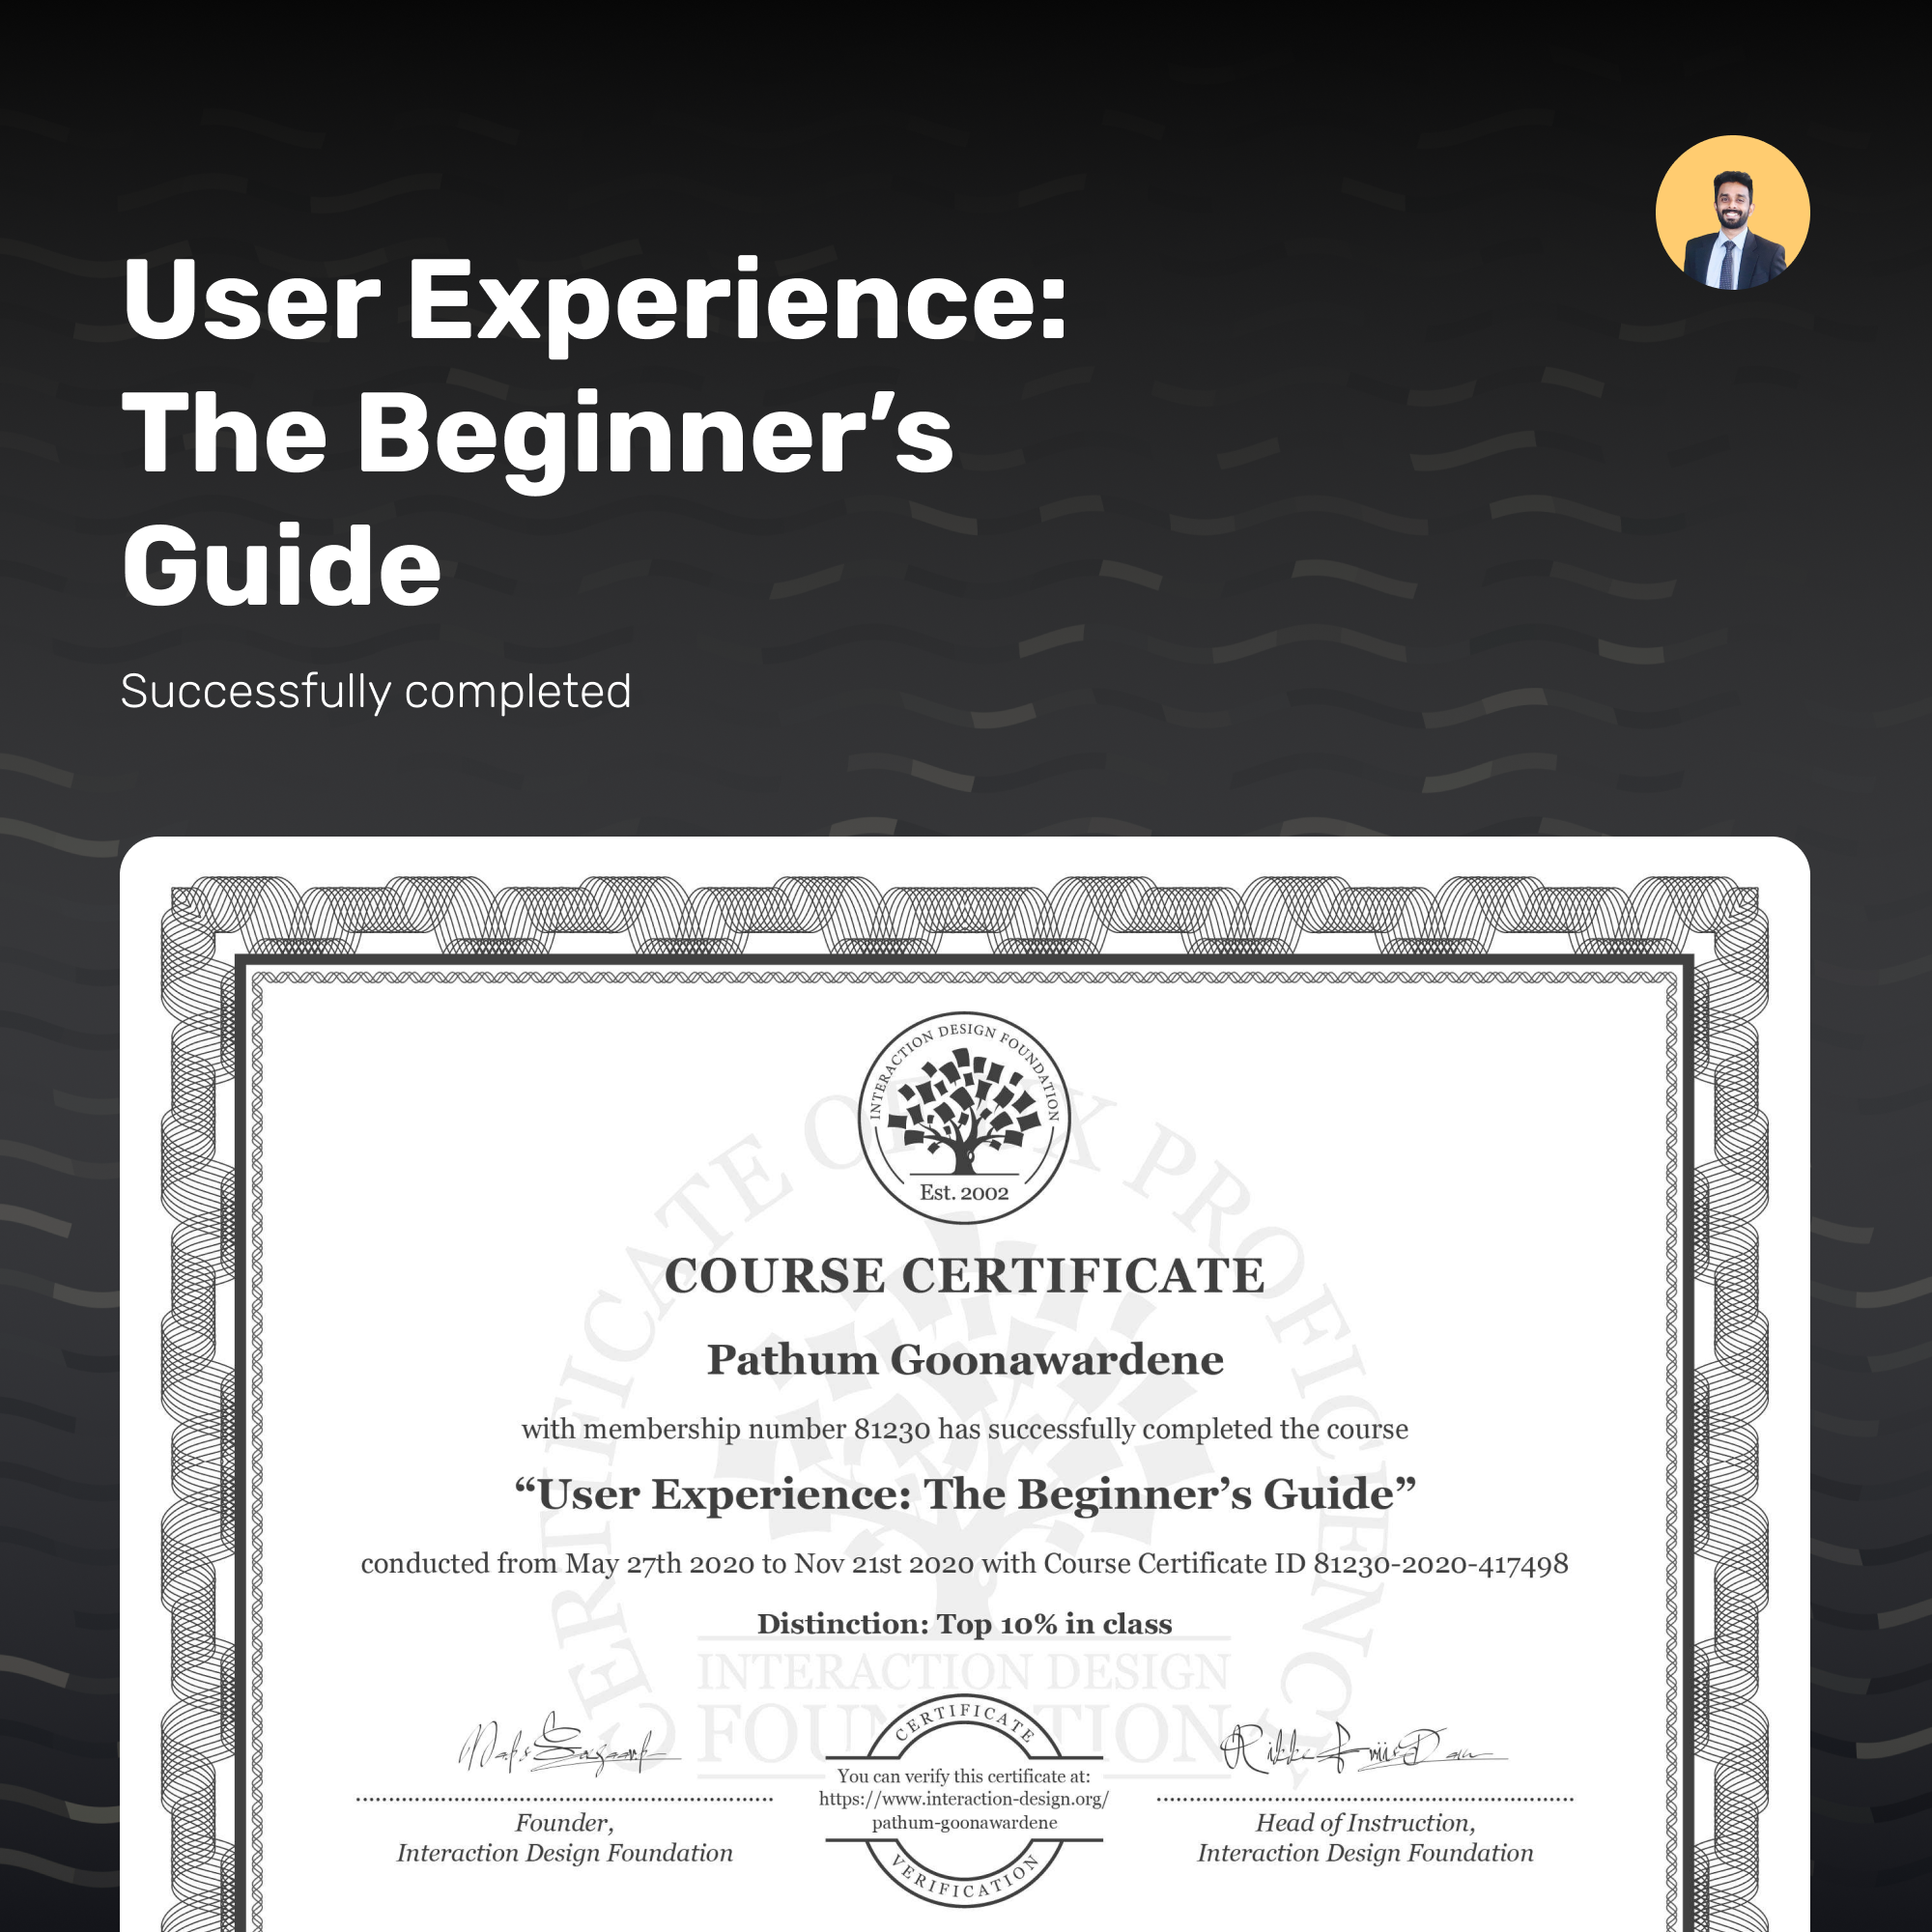 User Experience: The Beginner's Guide